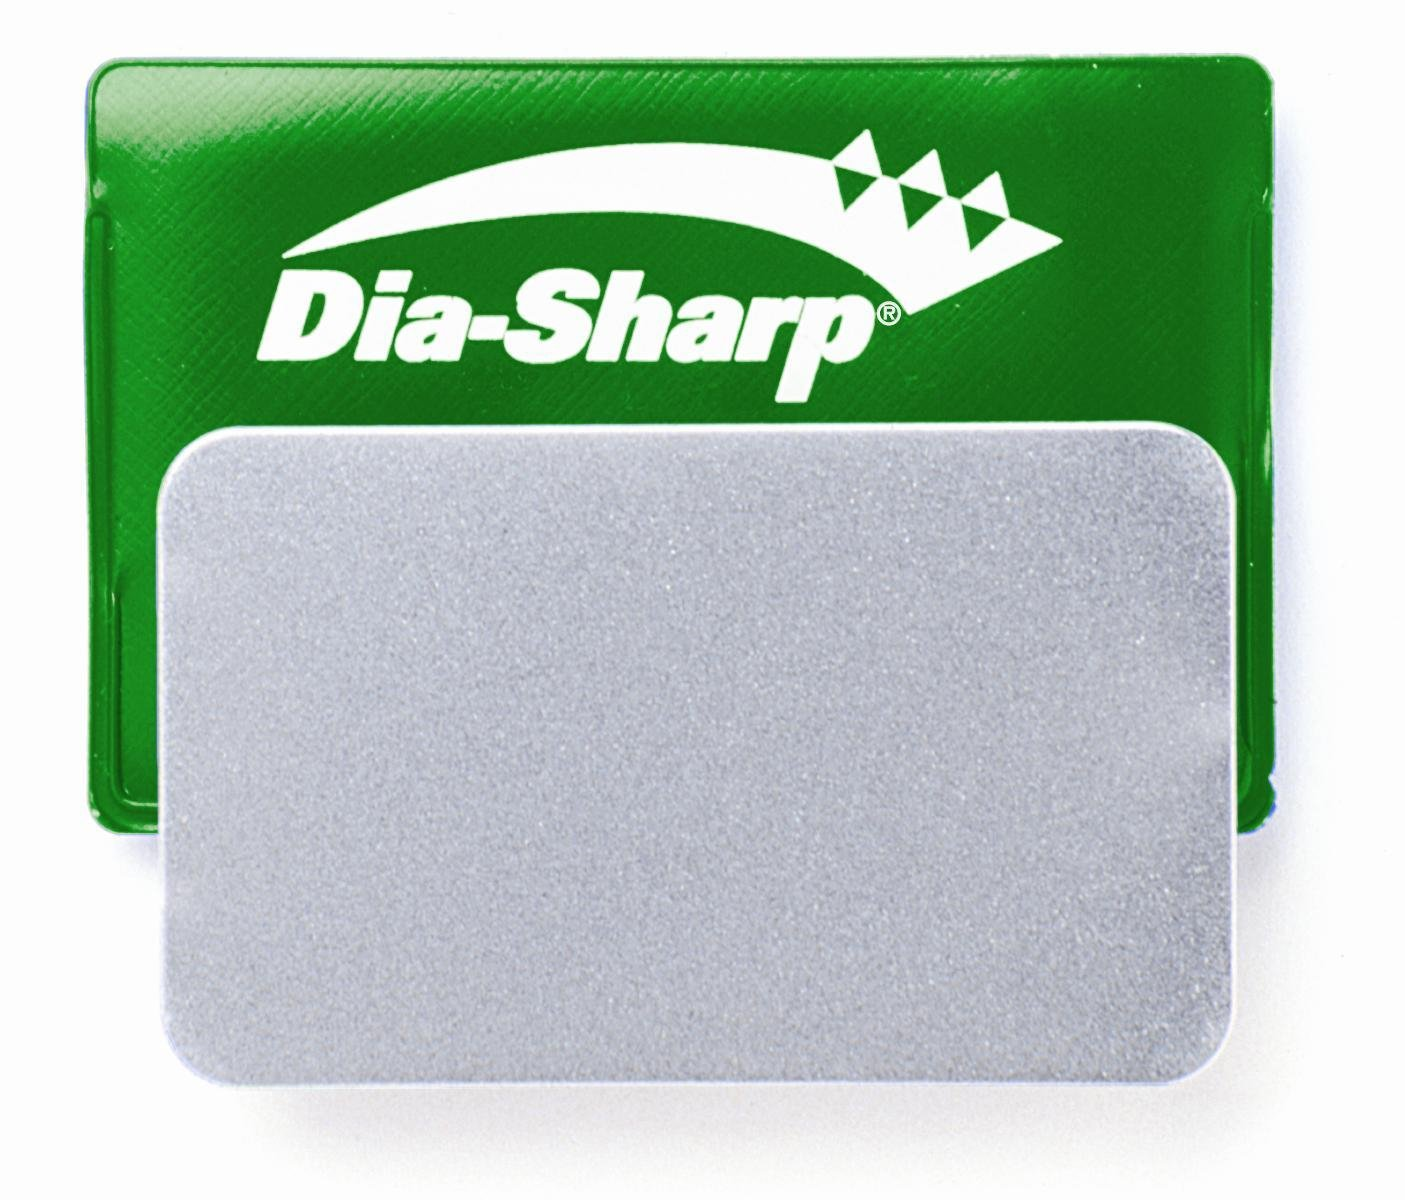 DMT D3E 3-Inch Dia-Sharp Sharpener Credit Card Sized Extra-Fine